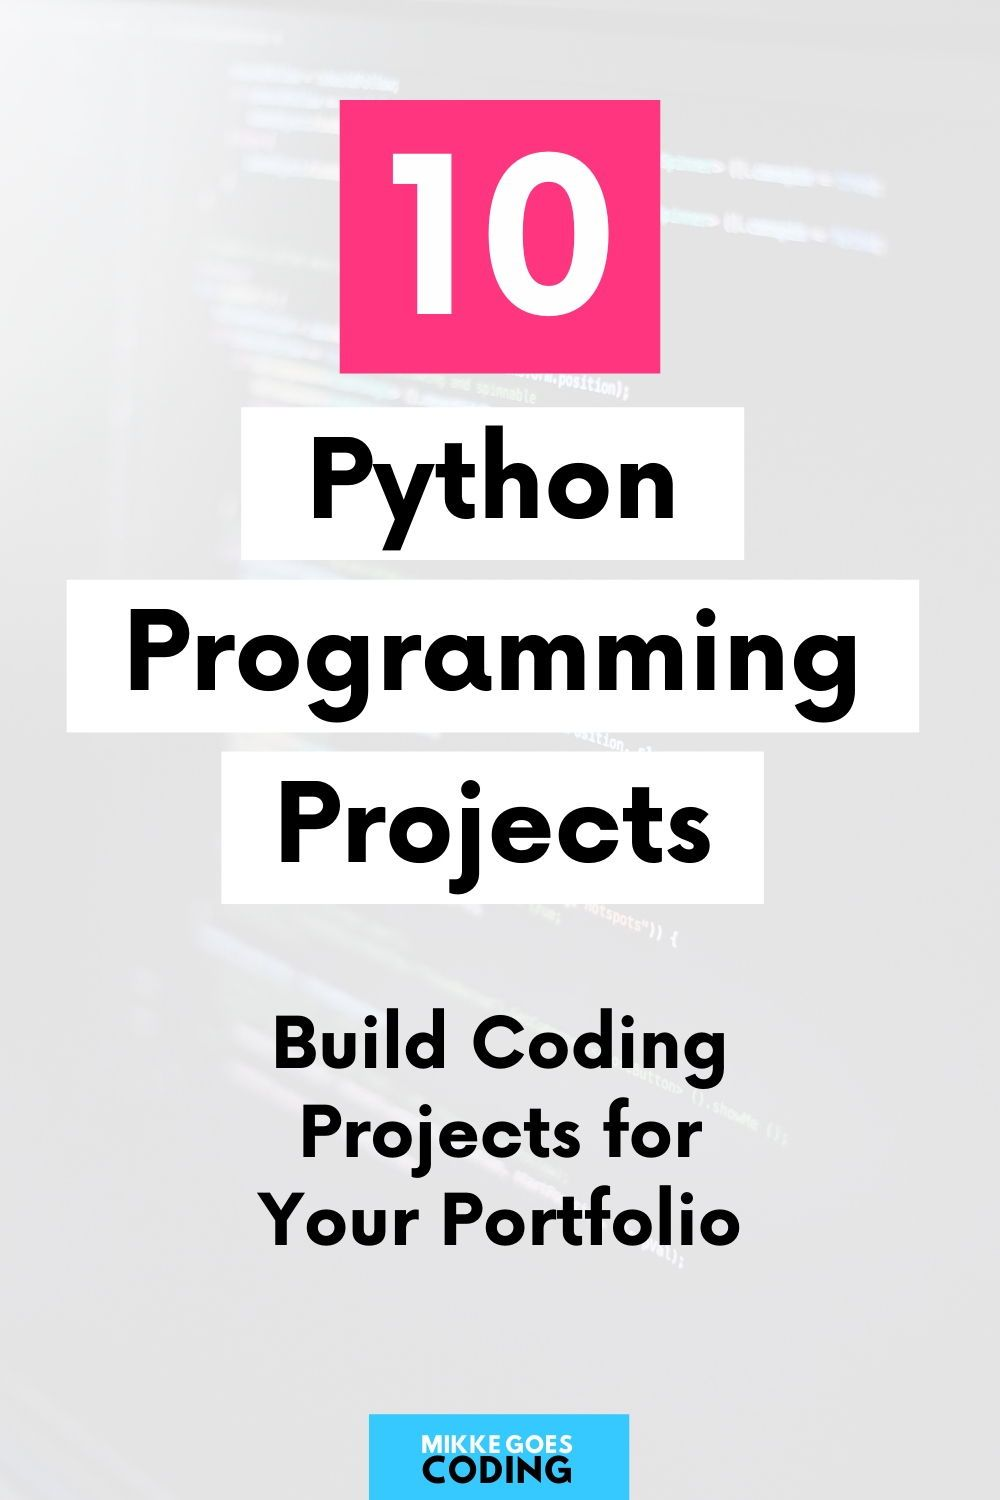 Python Projects For Beginners 10 Easy Python Programming Project Ideas Python Programming Basic Computer Programming Machine Learning Projects